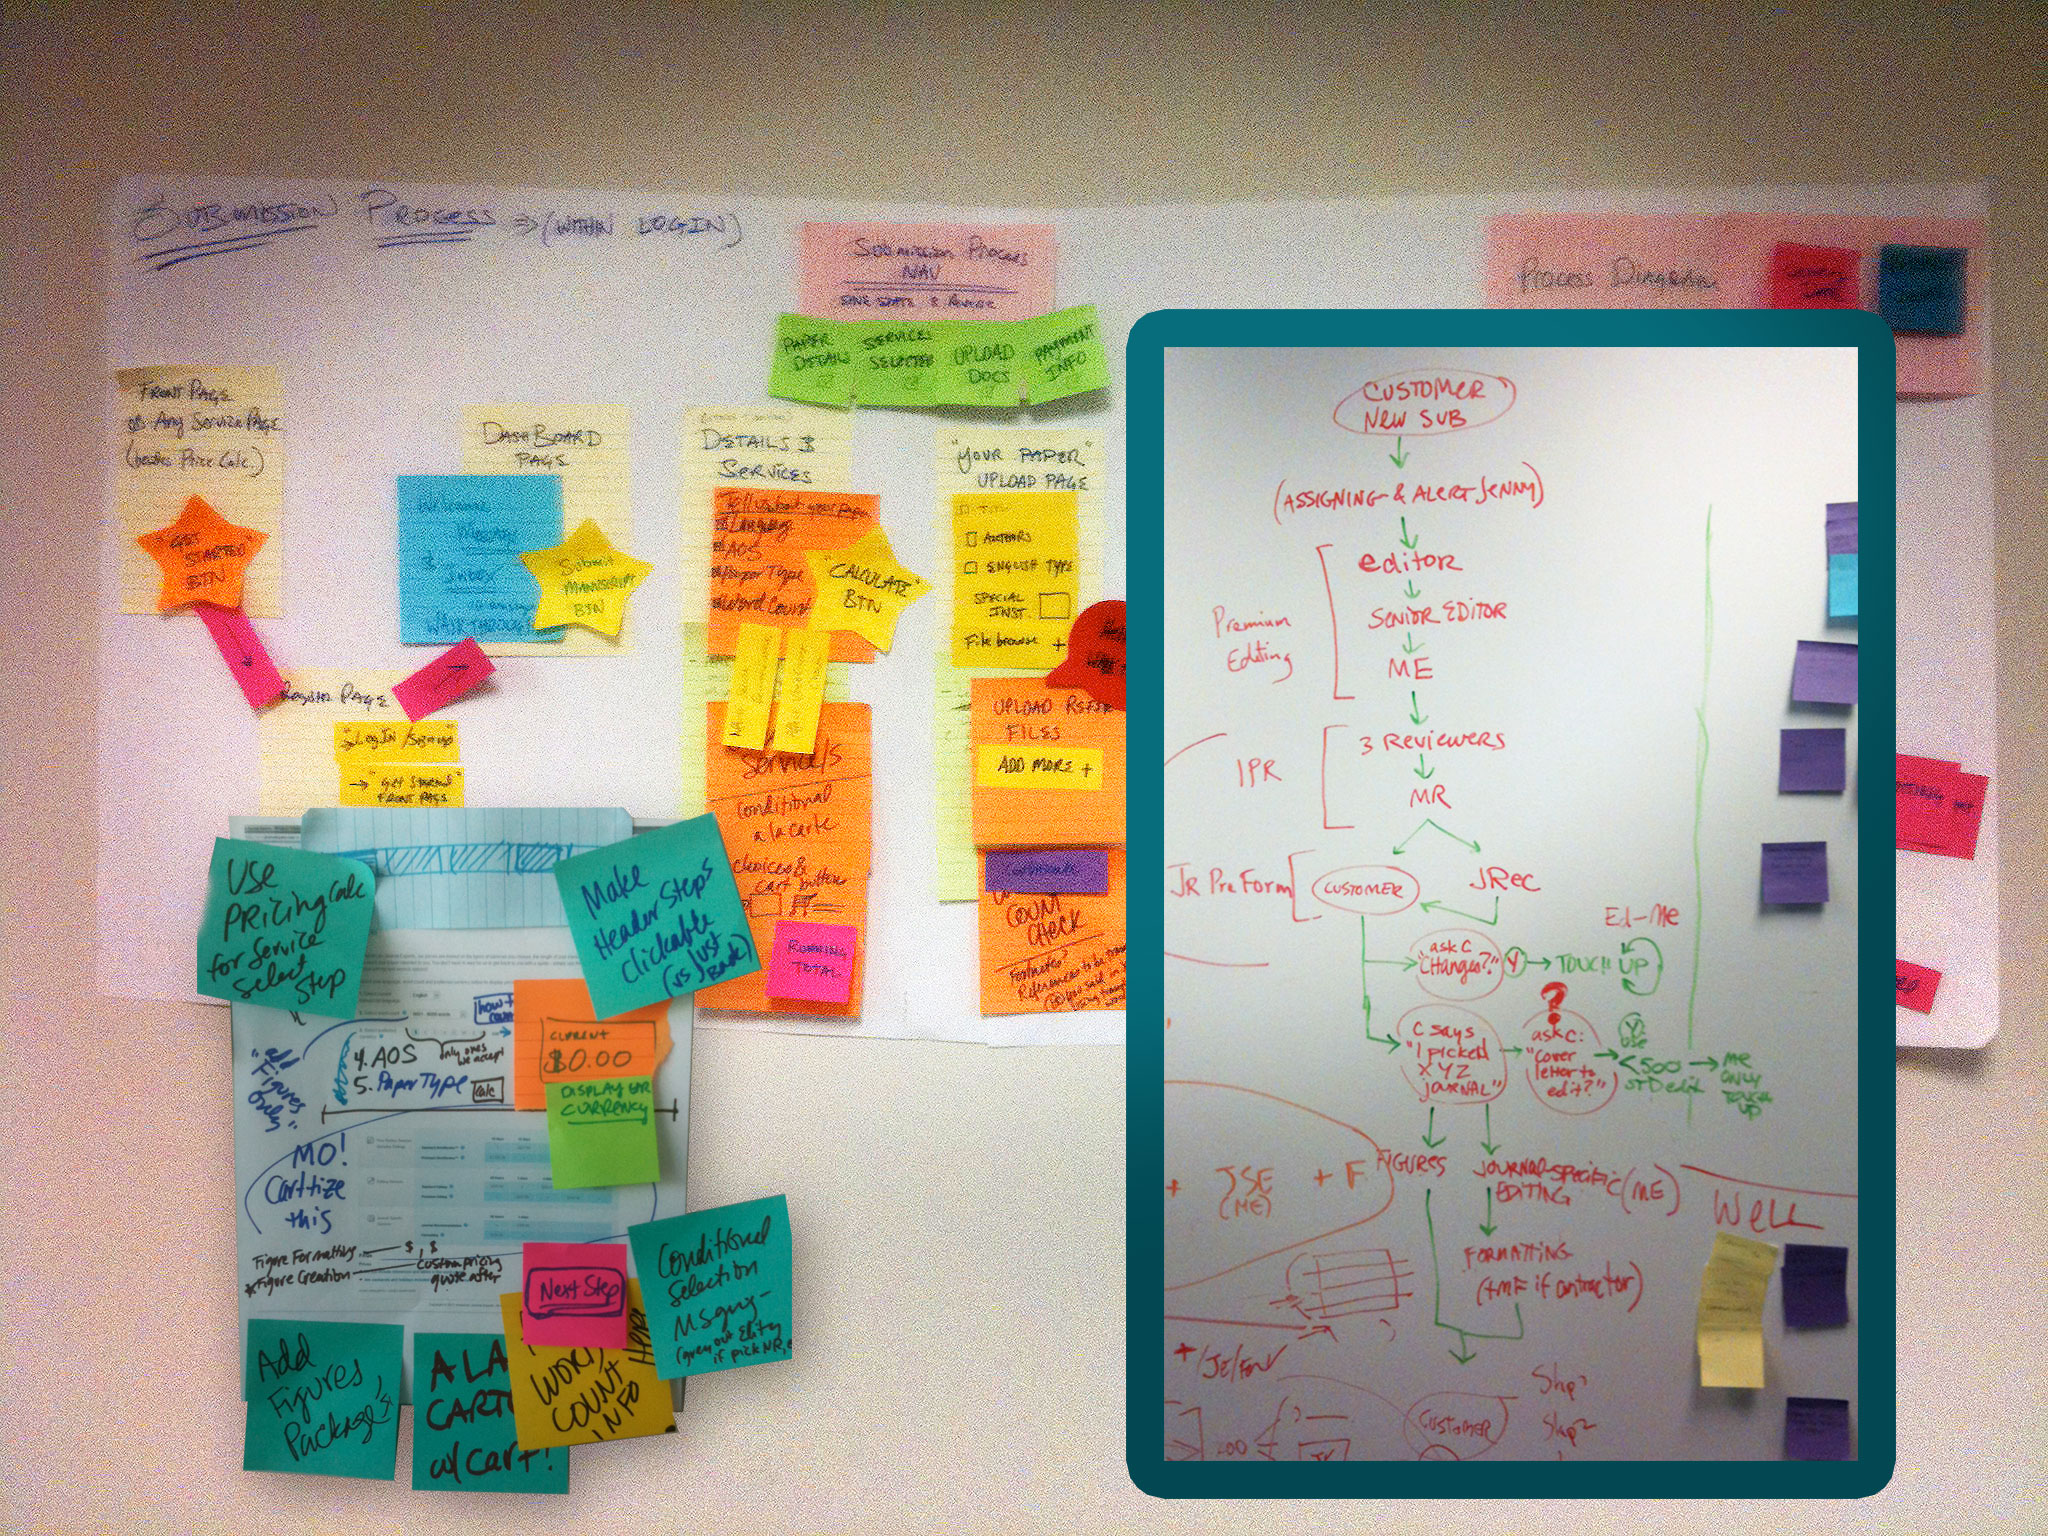 UX process whiteboard for the AJE submisssion process